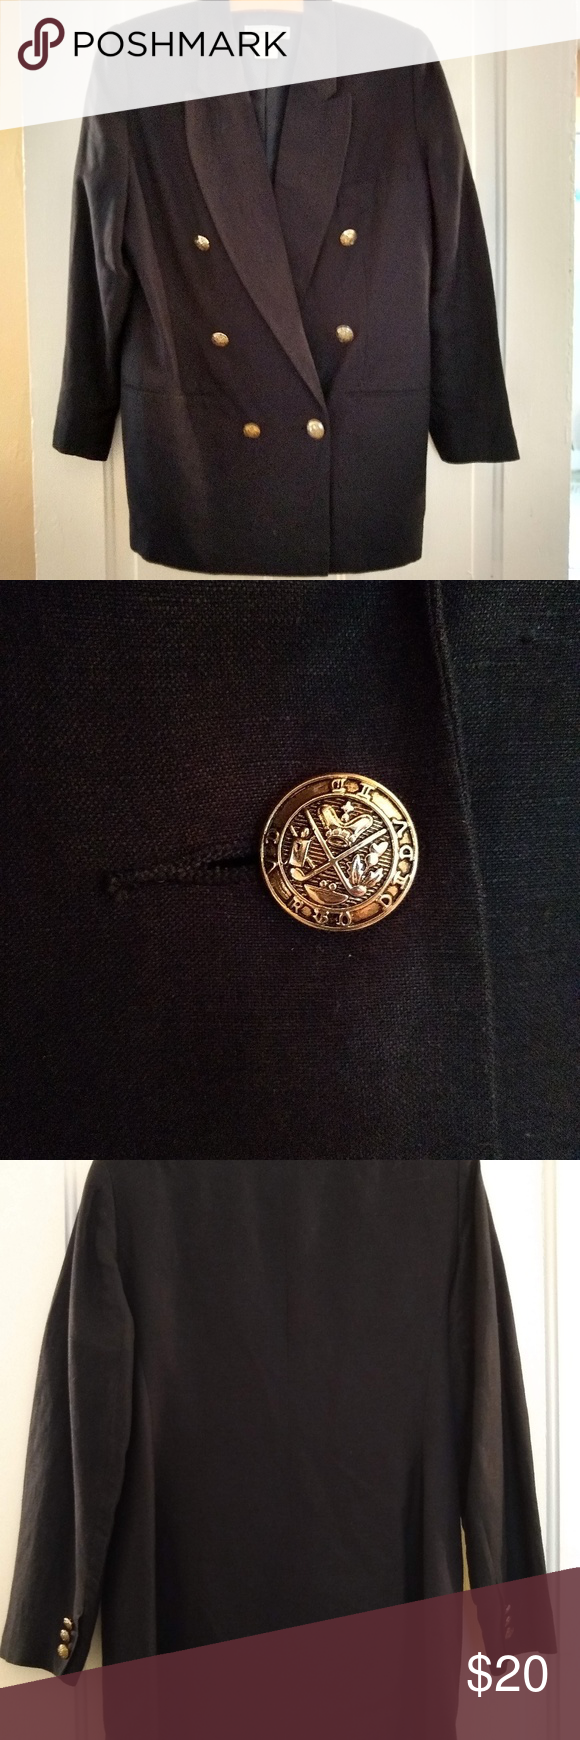 Vintage Navy blazer with beautiful gold buttons Let me know